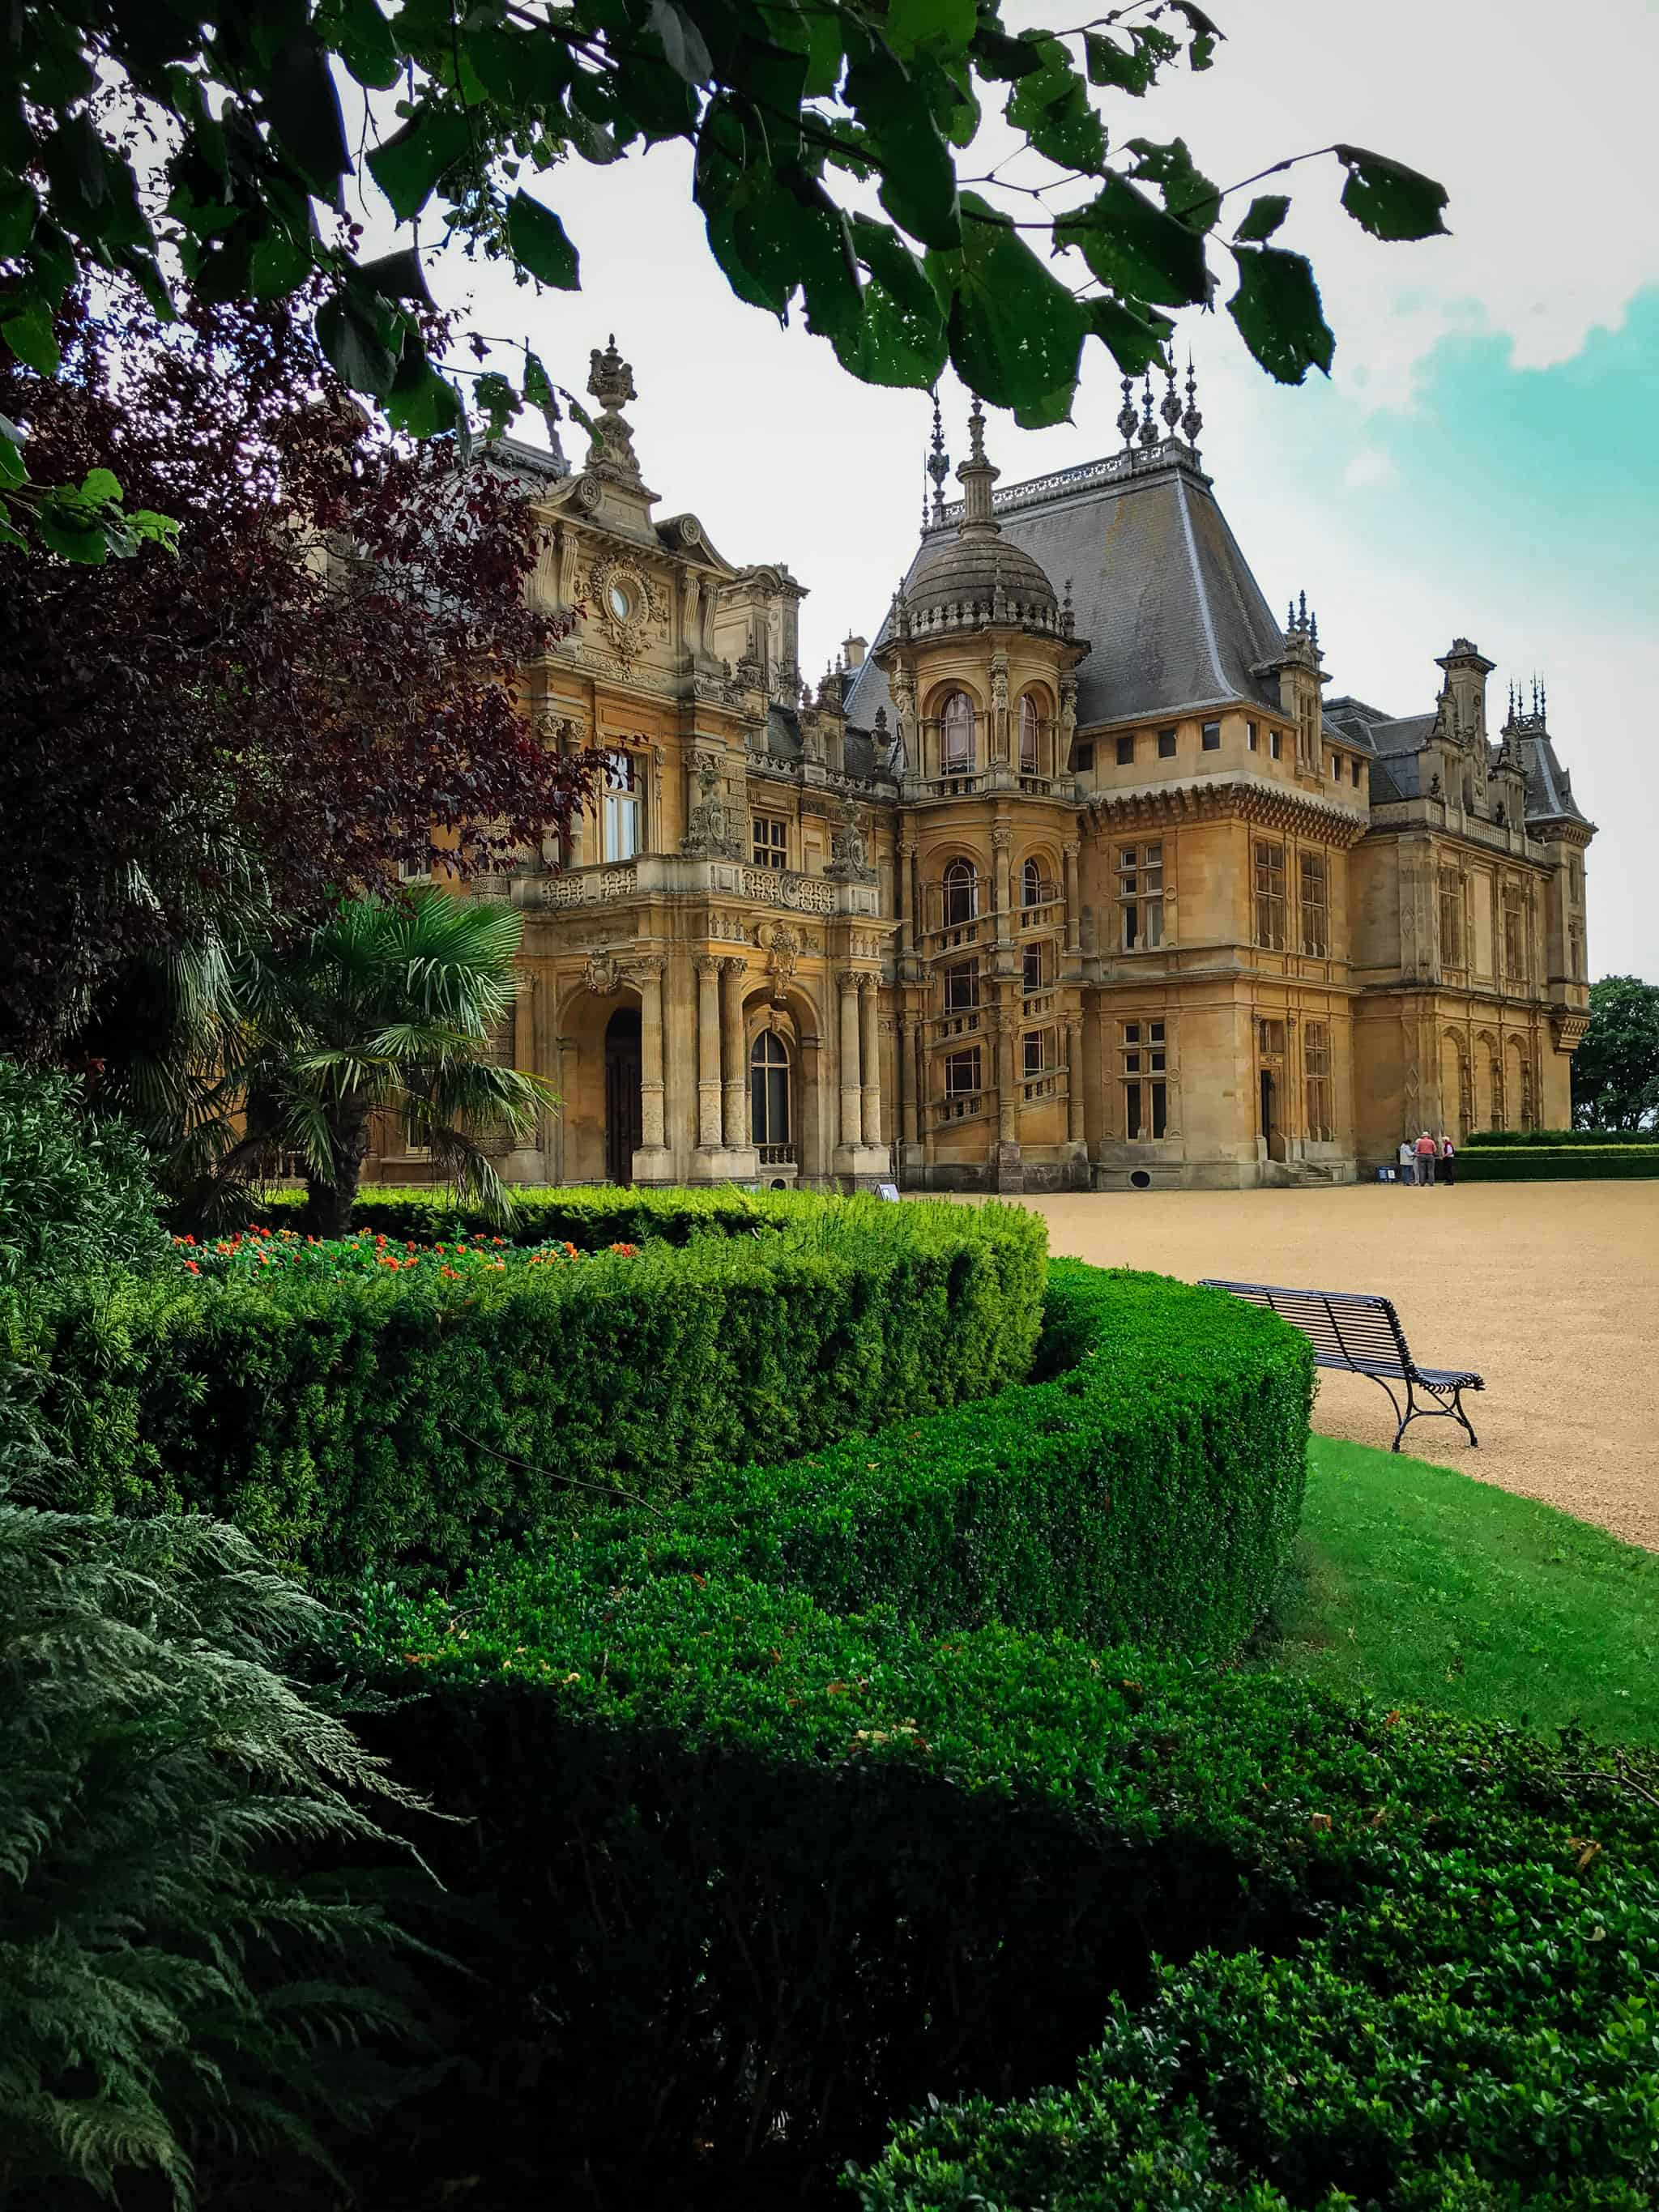 Road Trip to Buckinghamshire and Waddesdon manor | via @annabanana.co